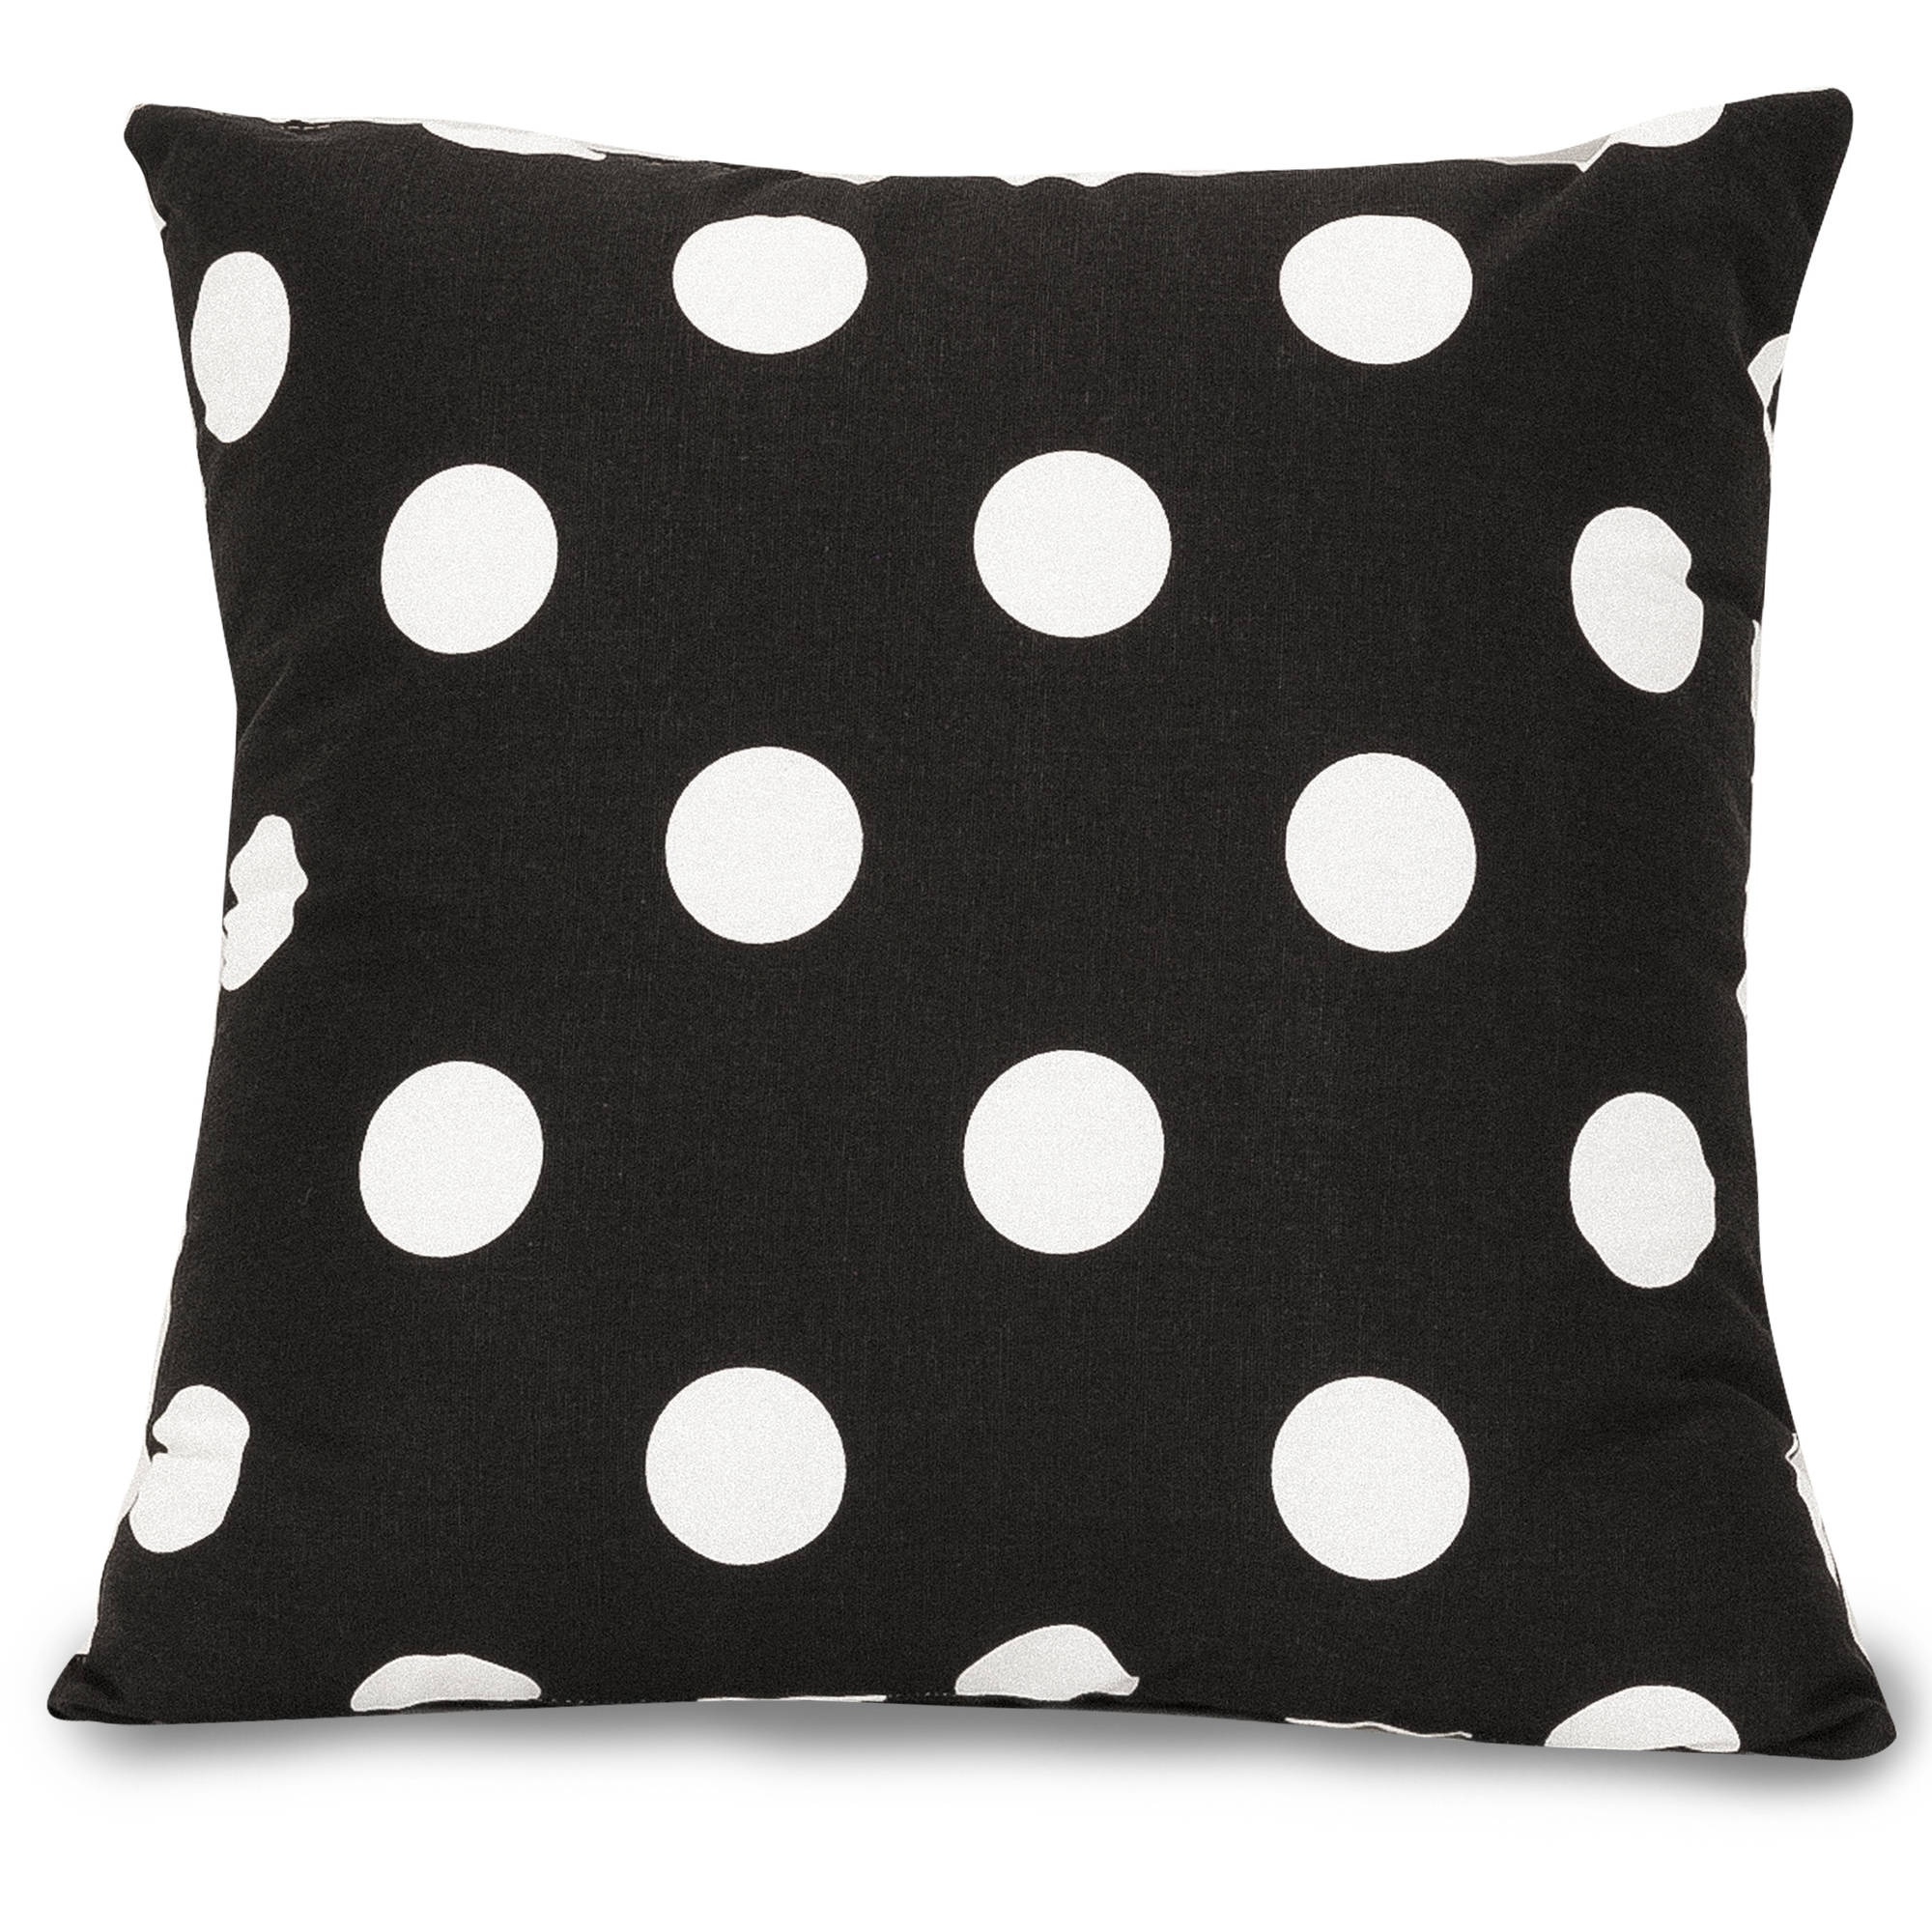 "Majestic Home Goods Black Large Polka Dot Large Decorative Pillow, 20"" x 20"""